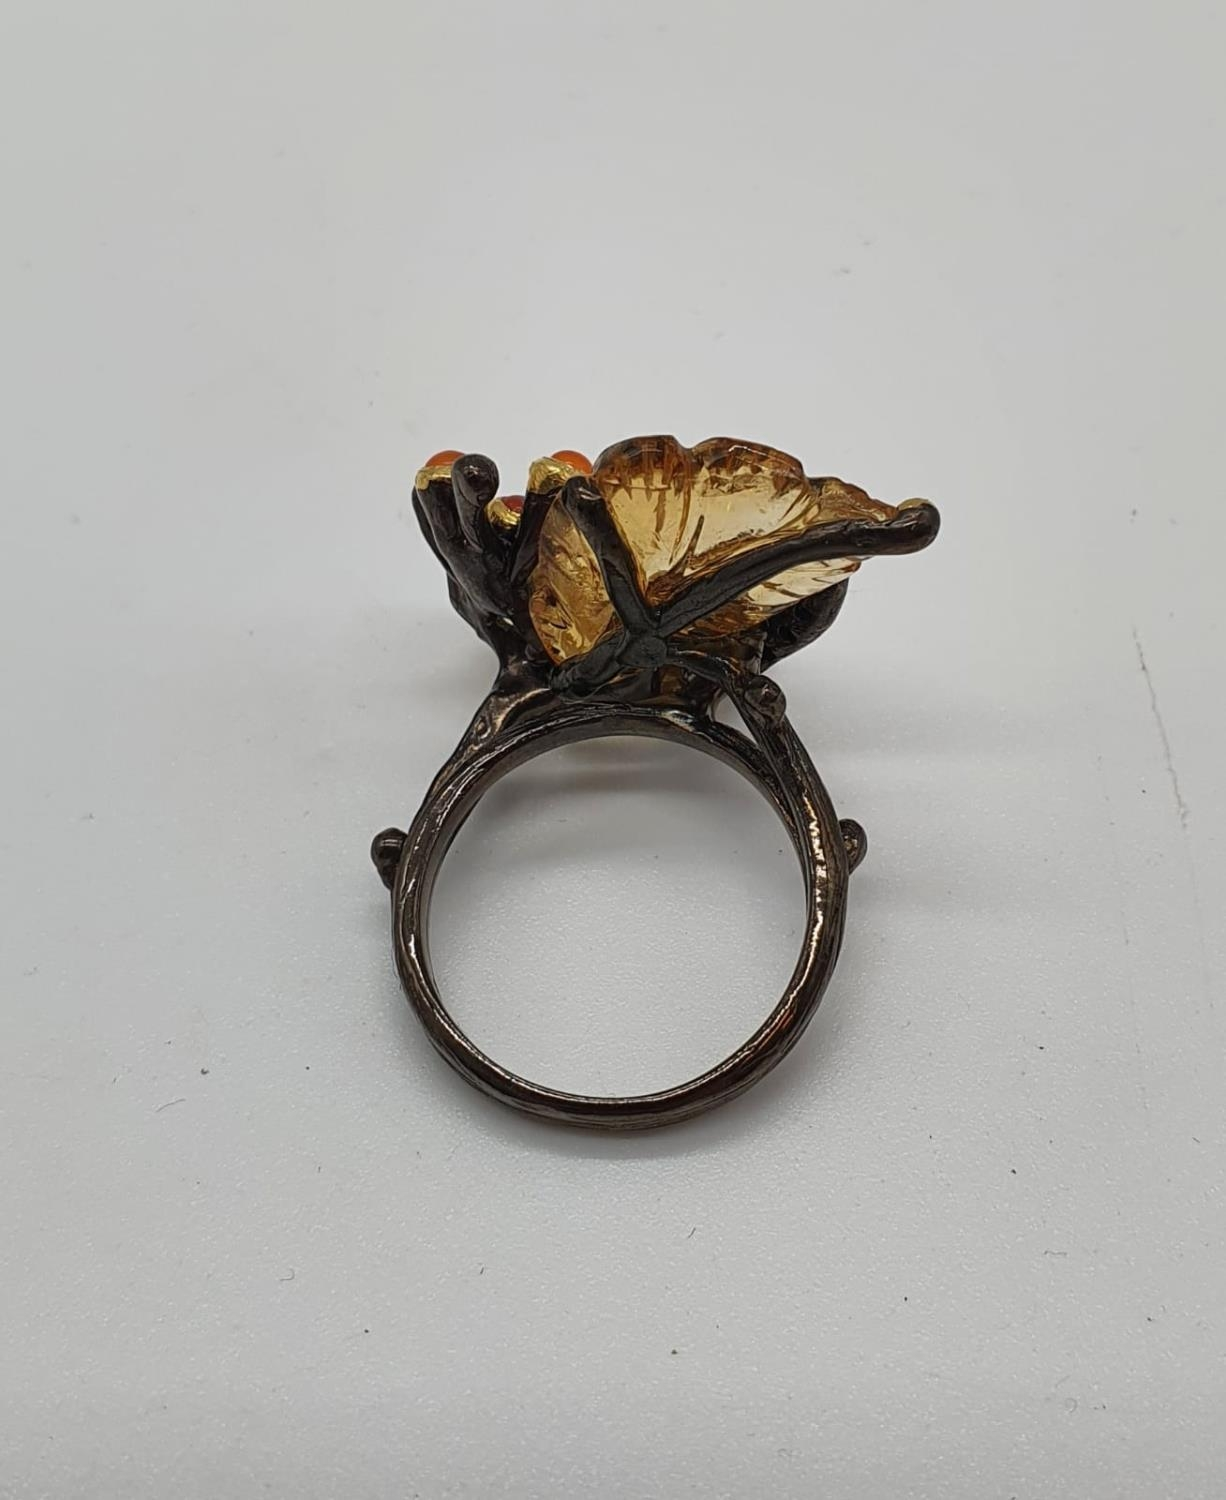 A unique Edwardian silver (unmarked) ring with carved semiprecious and precious stones (citrine, - Image 3 of 5